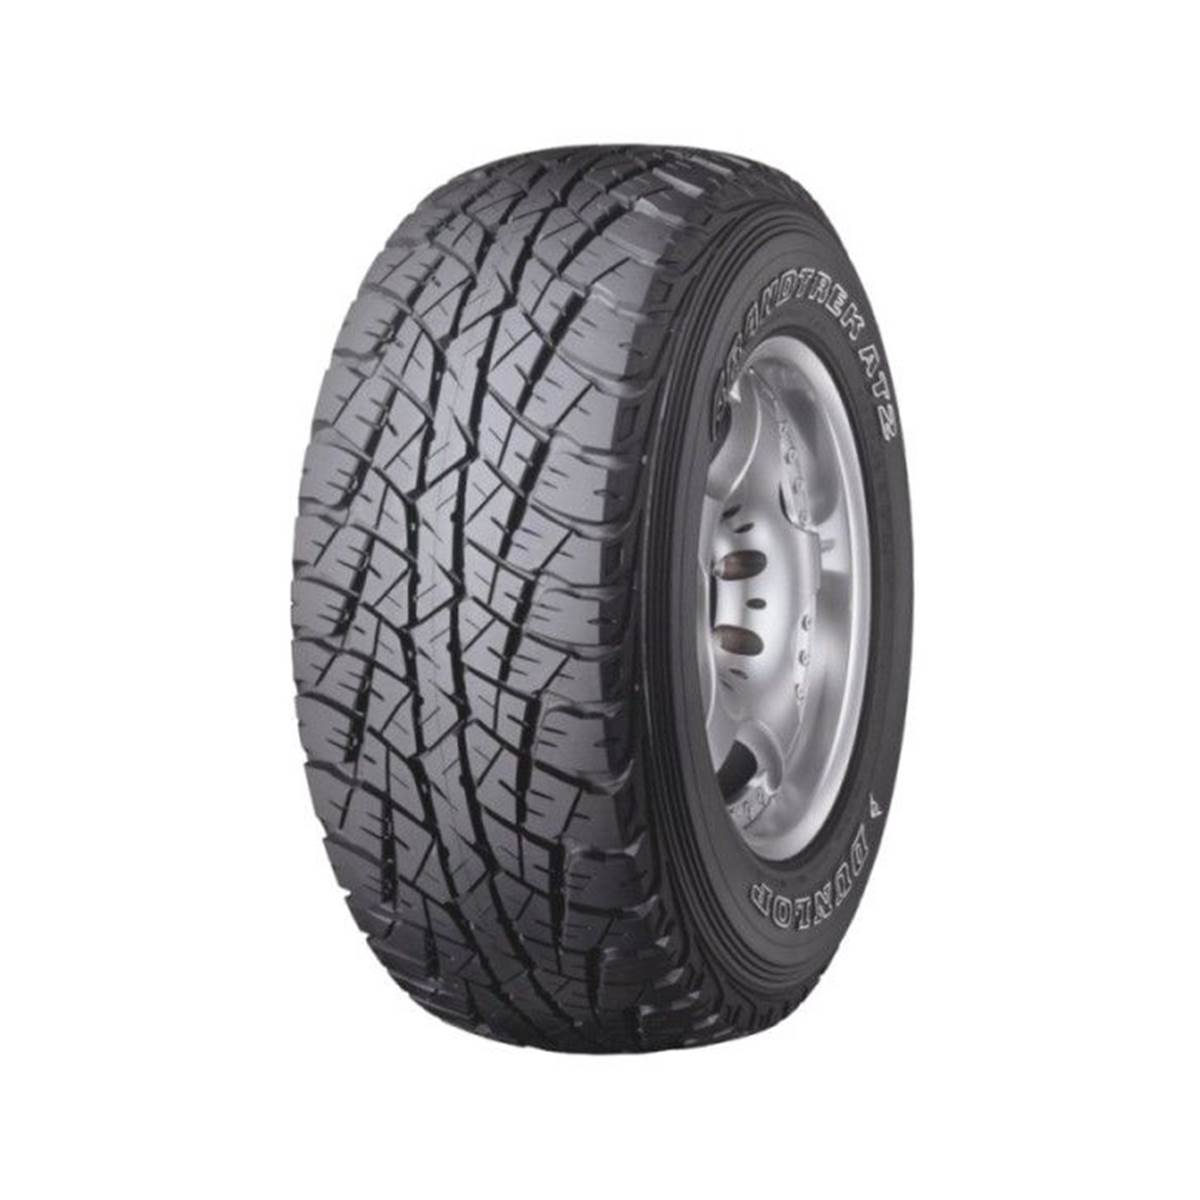 Pneu 4X4 DUNLOP 245/17R65 111S Grandtrek At20 XL